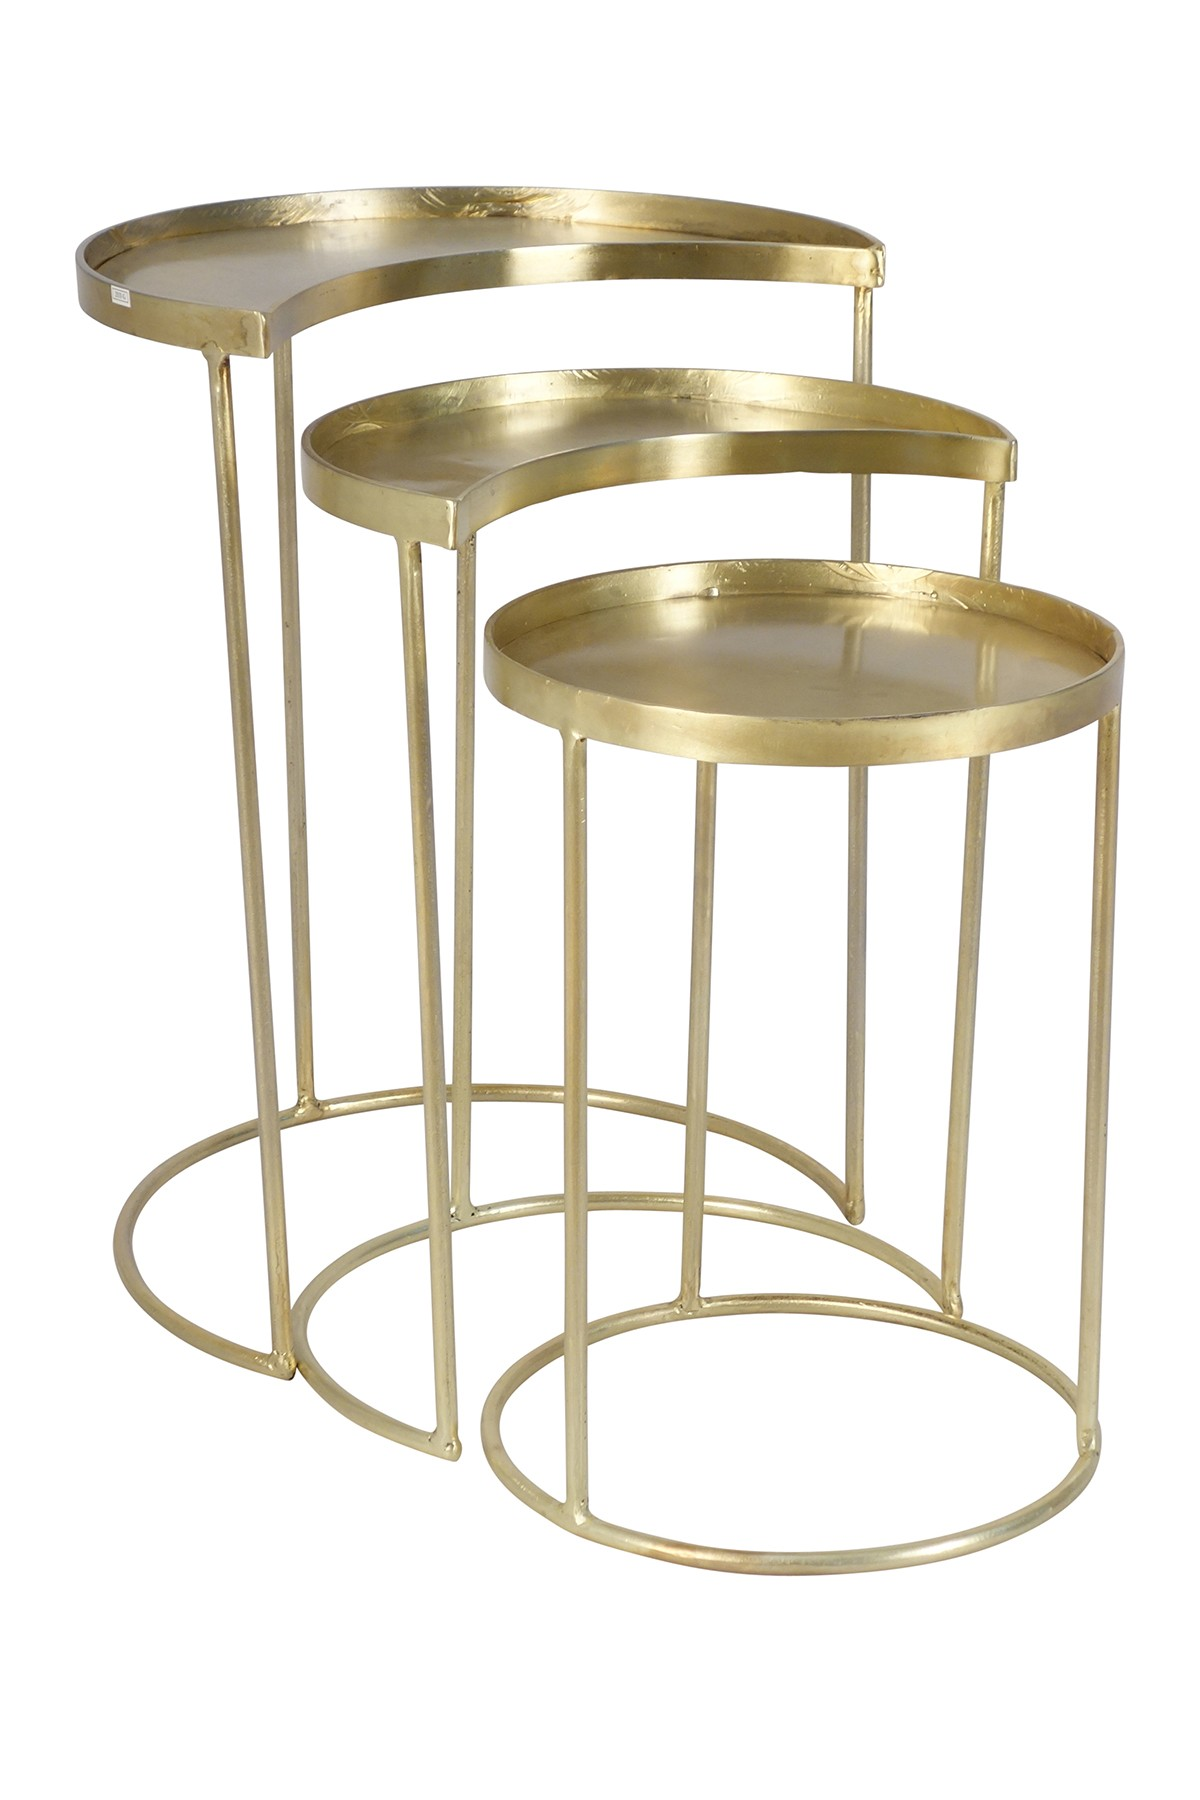 amazing metal accent table outdoor white target threshold top base drum side glass tables corranade bronze wrought round iron patio full size large square coffee wooden designs